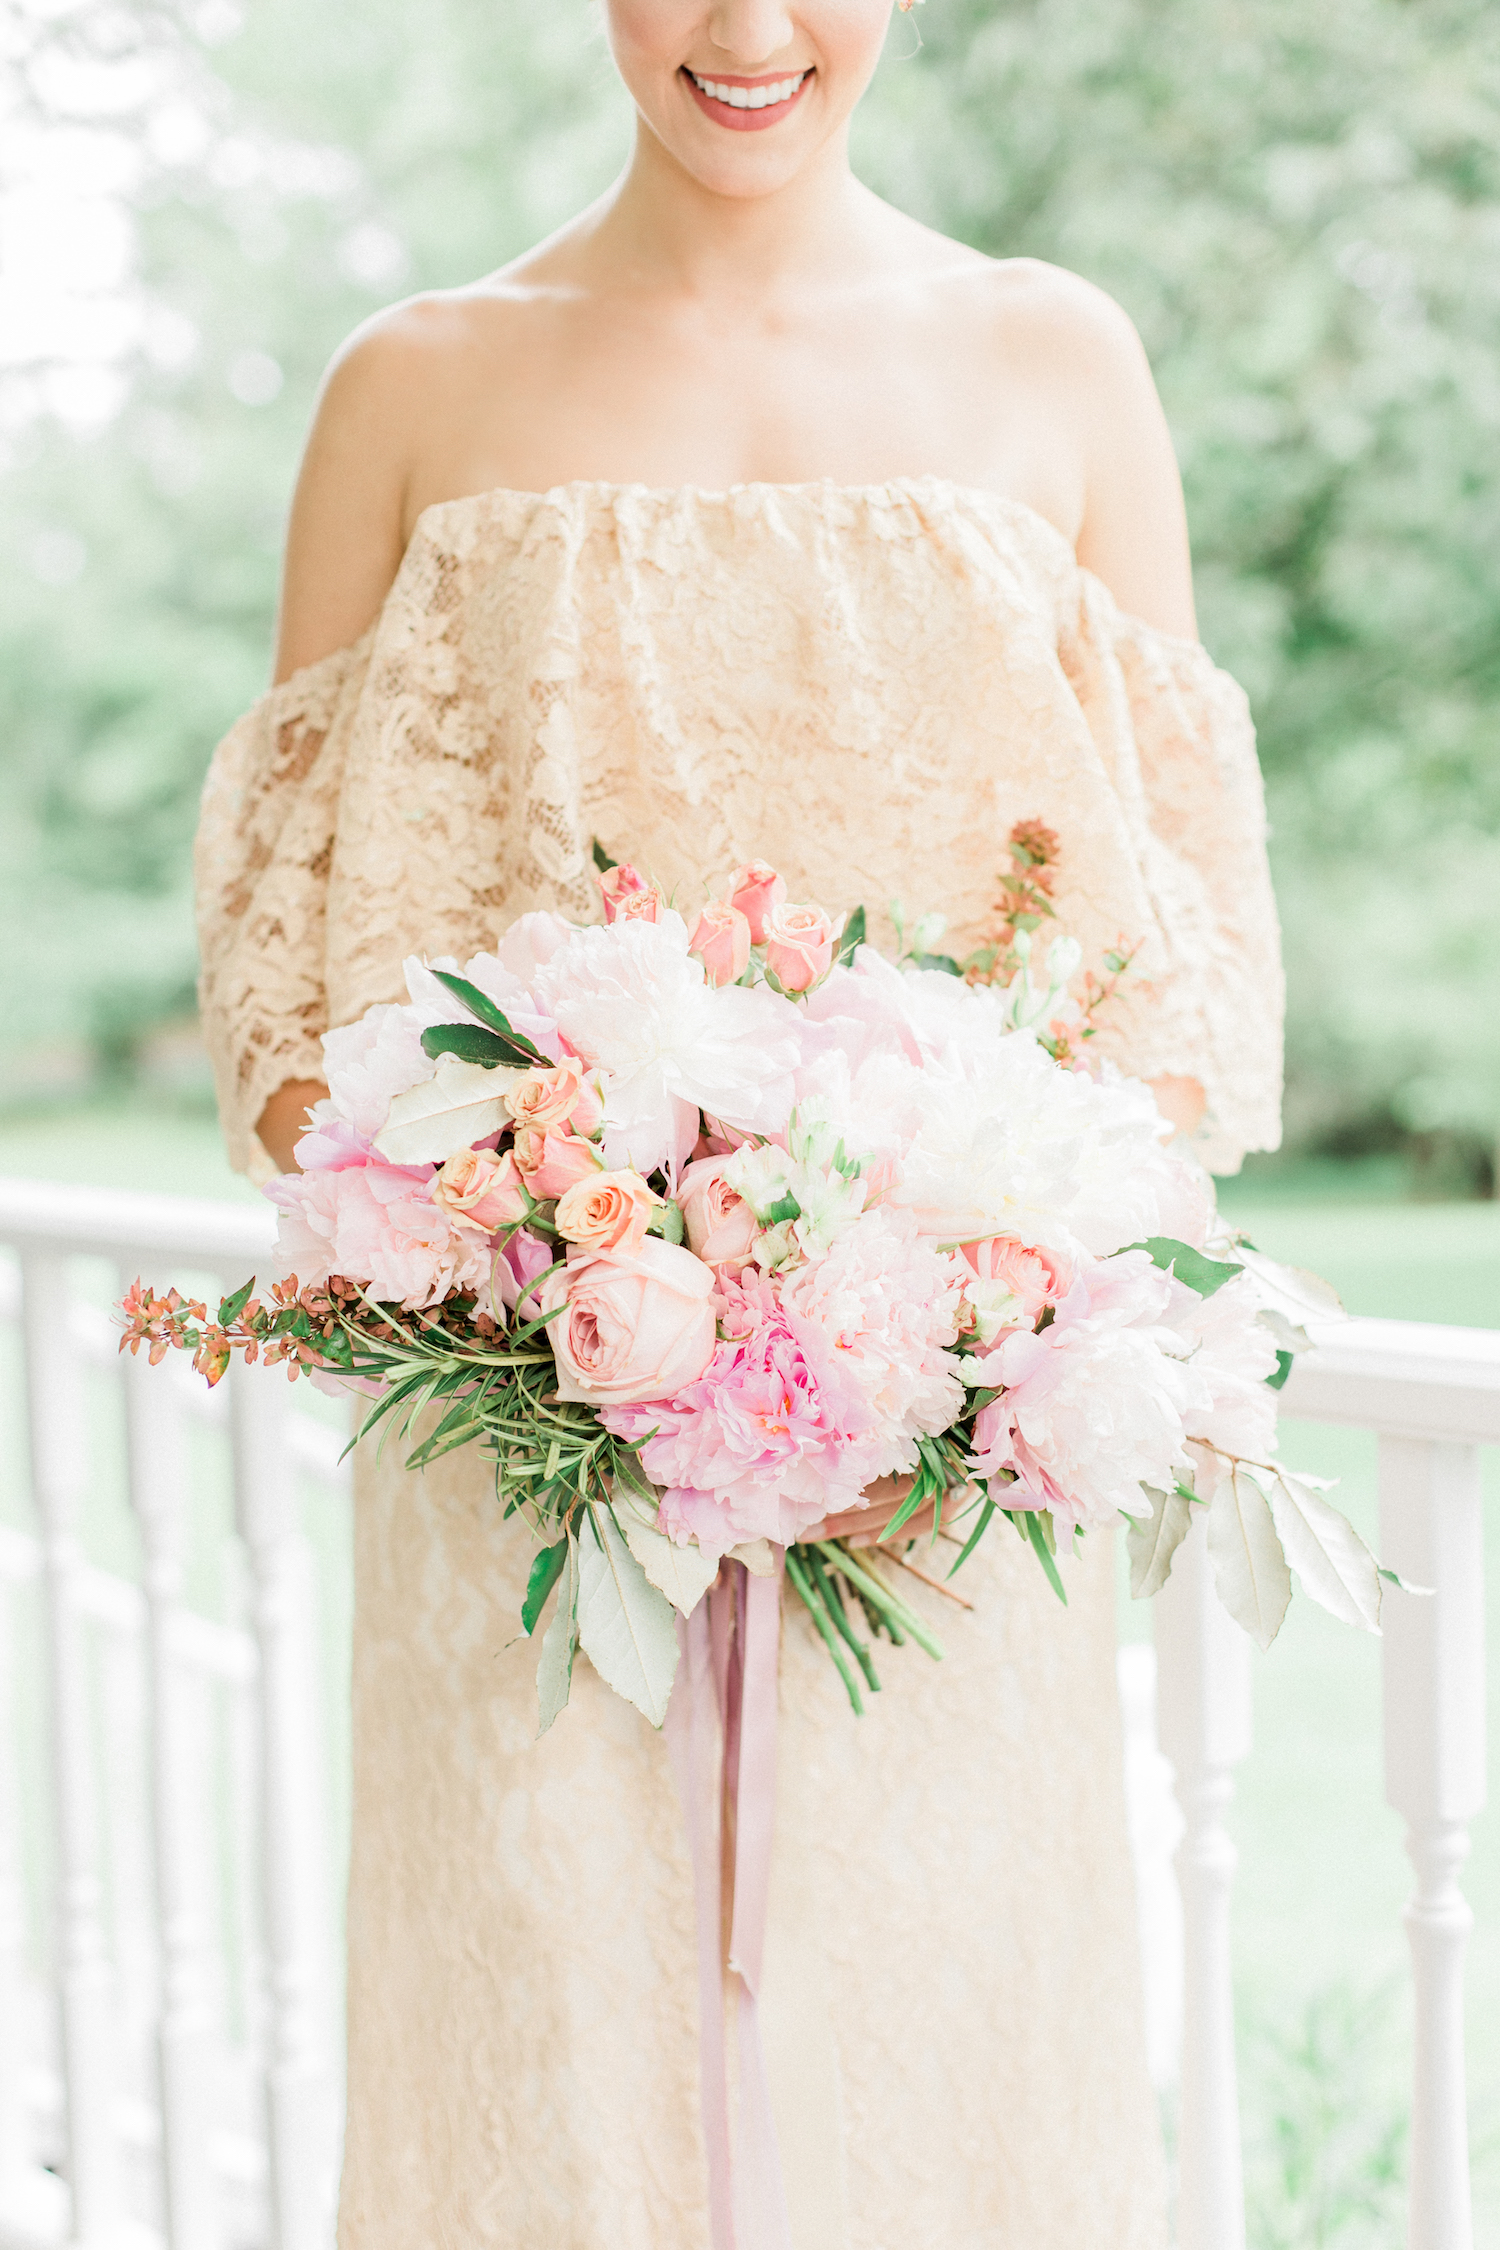 Beautiful pink mauve and blush wedding bouquet with peonies and roses.